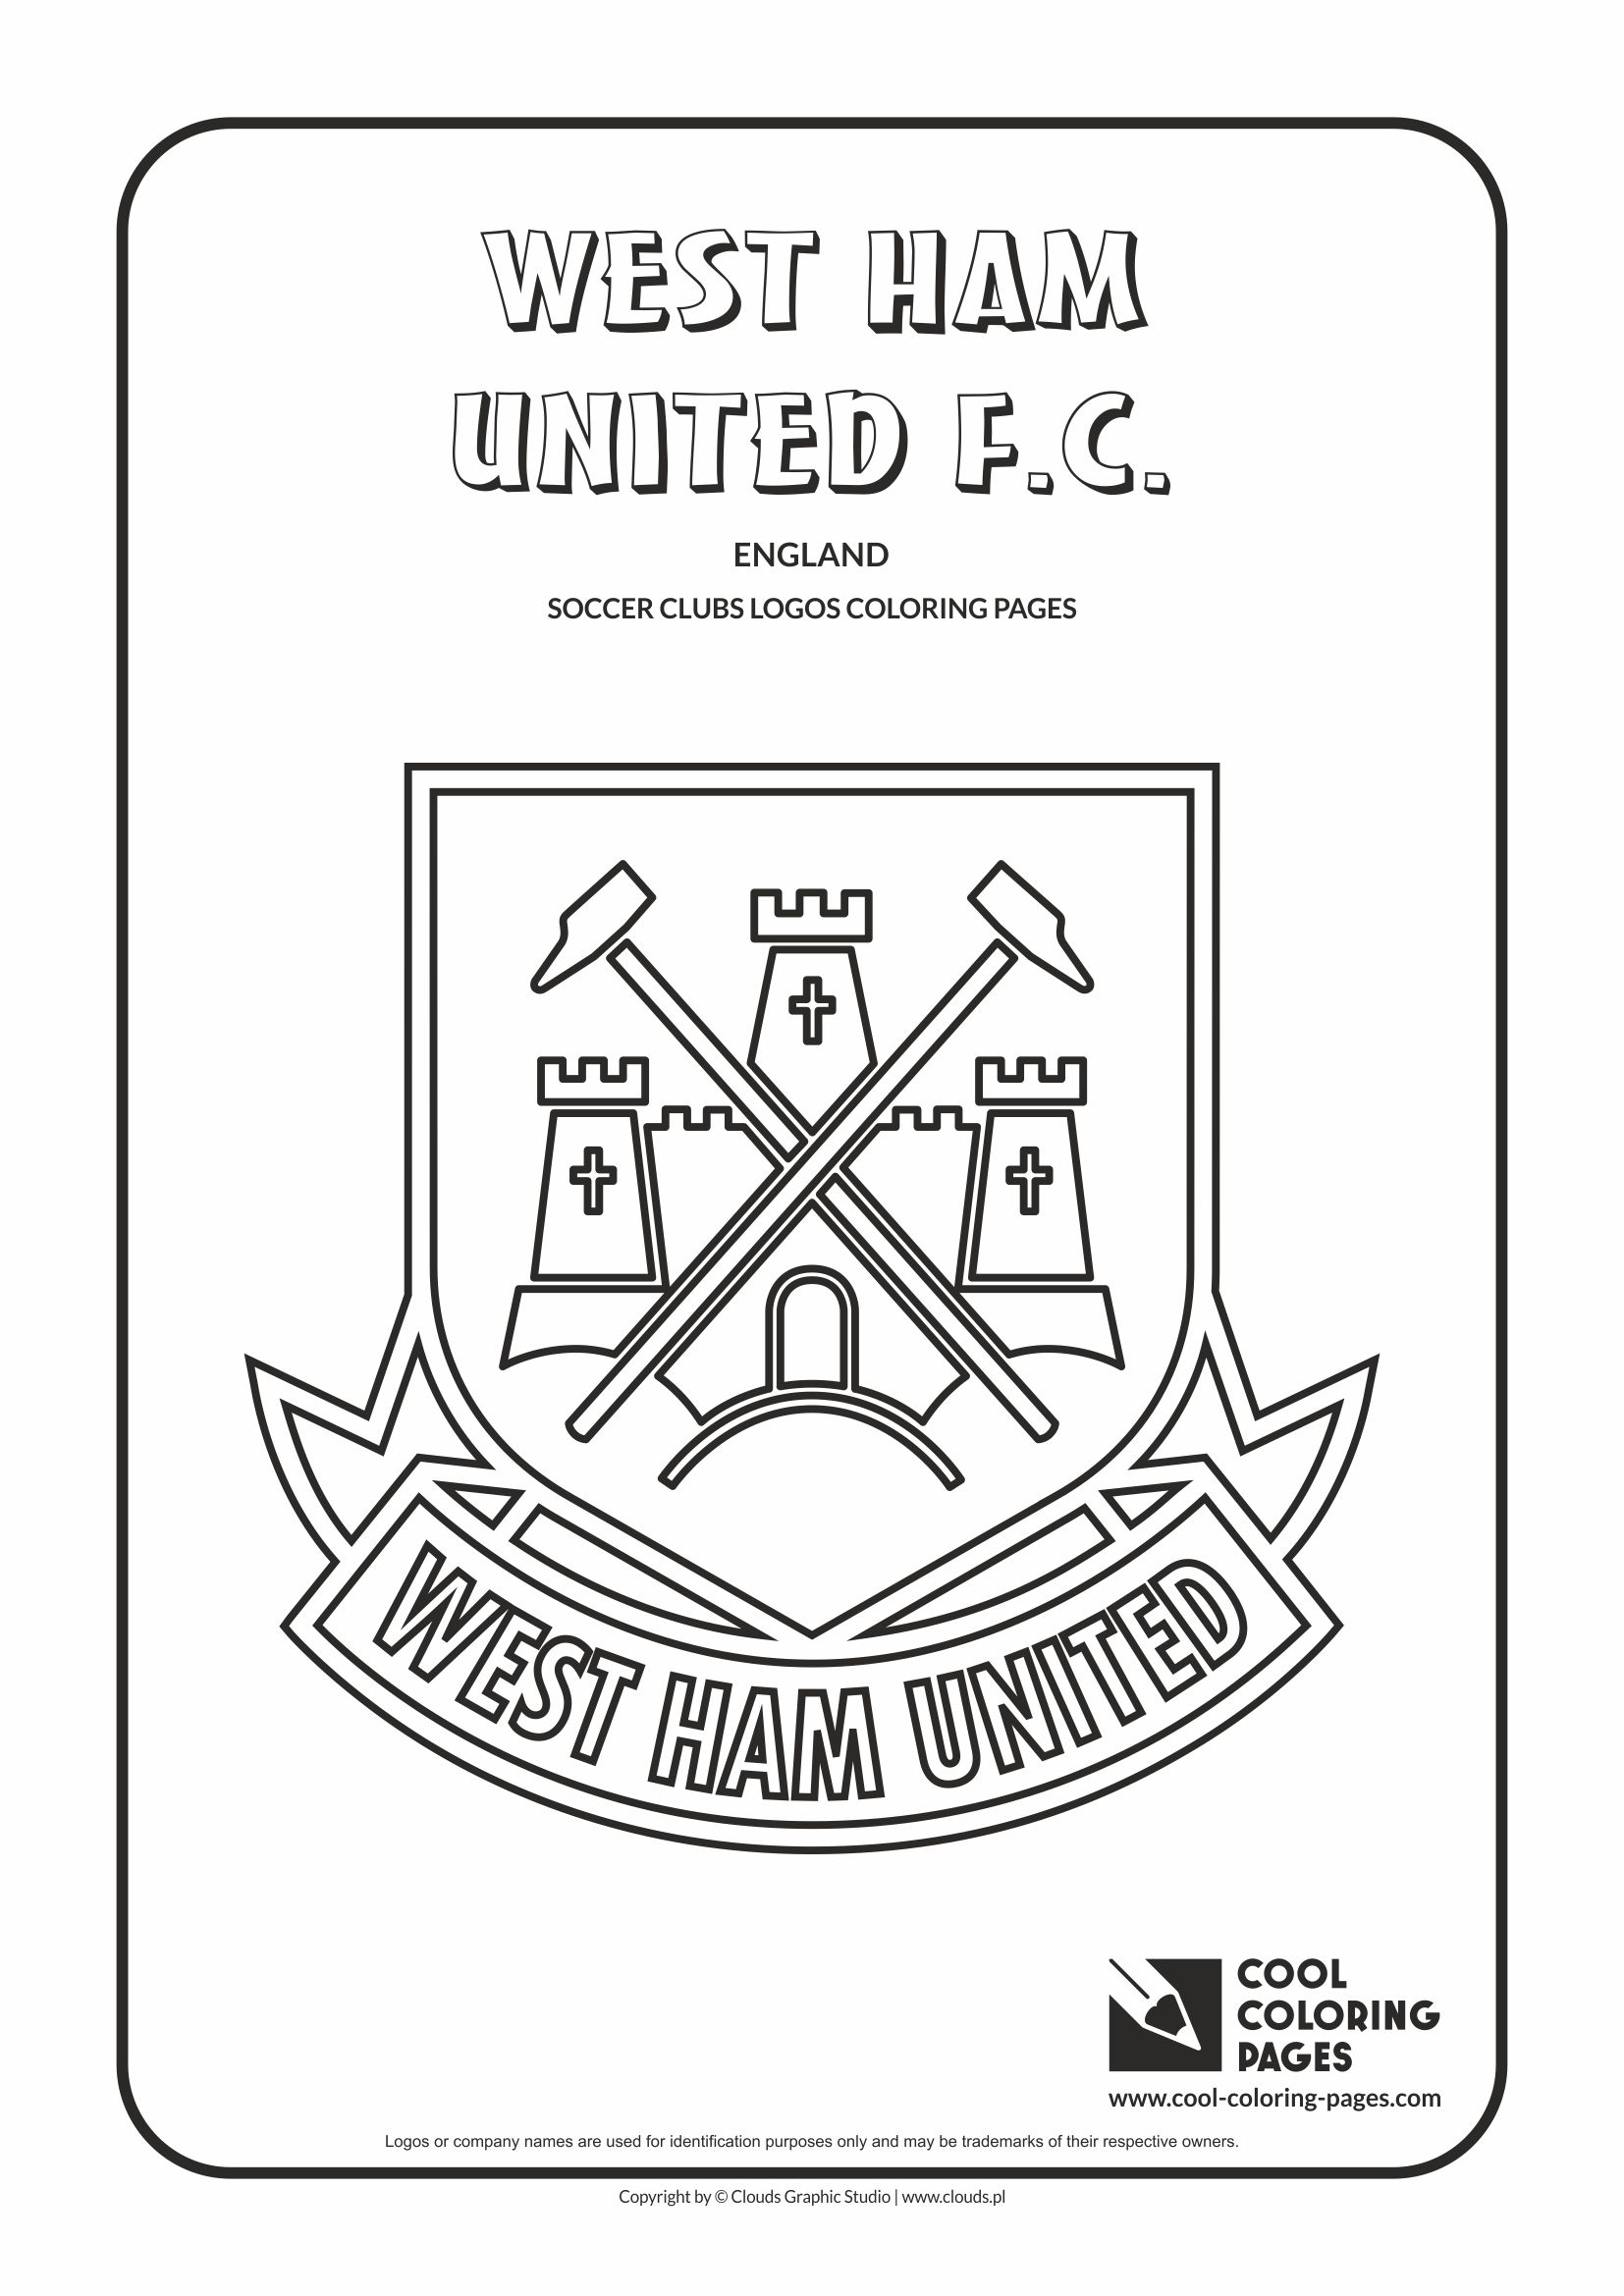 cool coloring pages soccer clubs logos west ham united fc logo coloring page